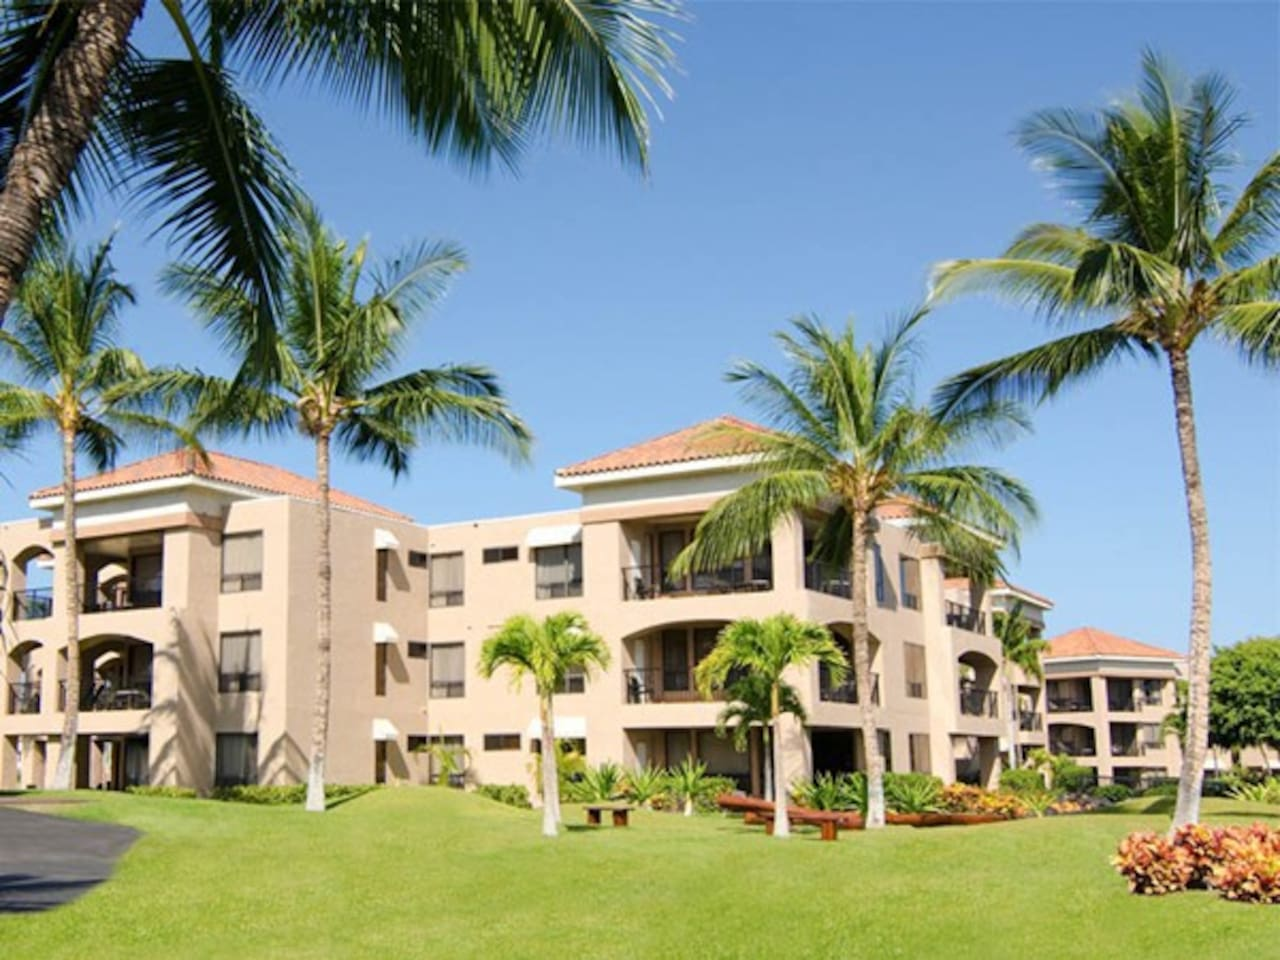 Hilton Bay Club At Waikoloa 2br Apartments For In Village Hawaii United States